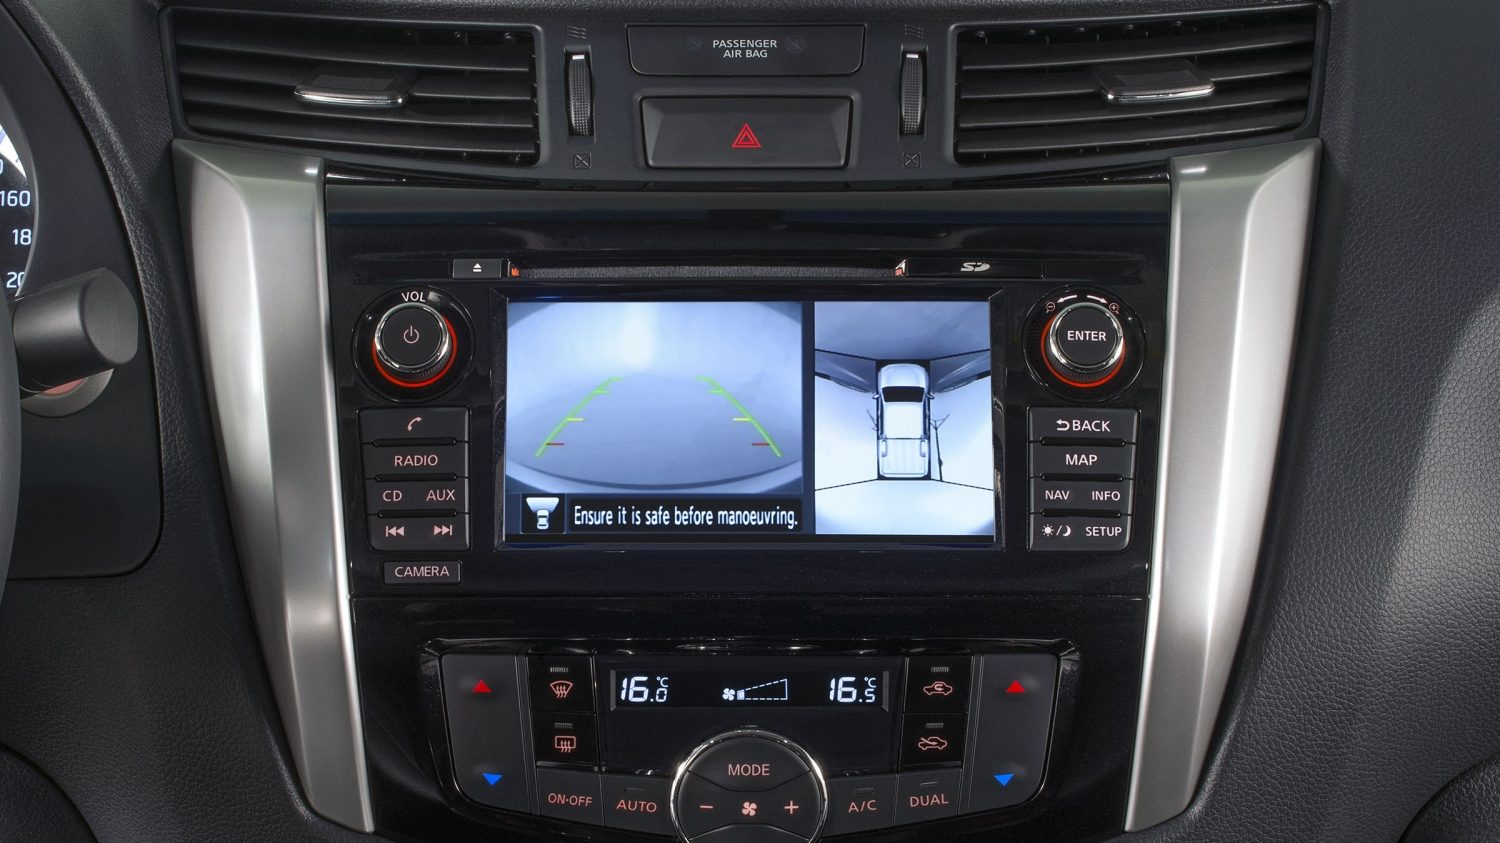 Navara special version technology: Around View Mirror (AVM)